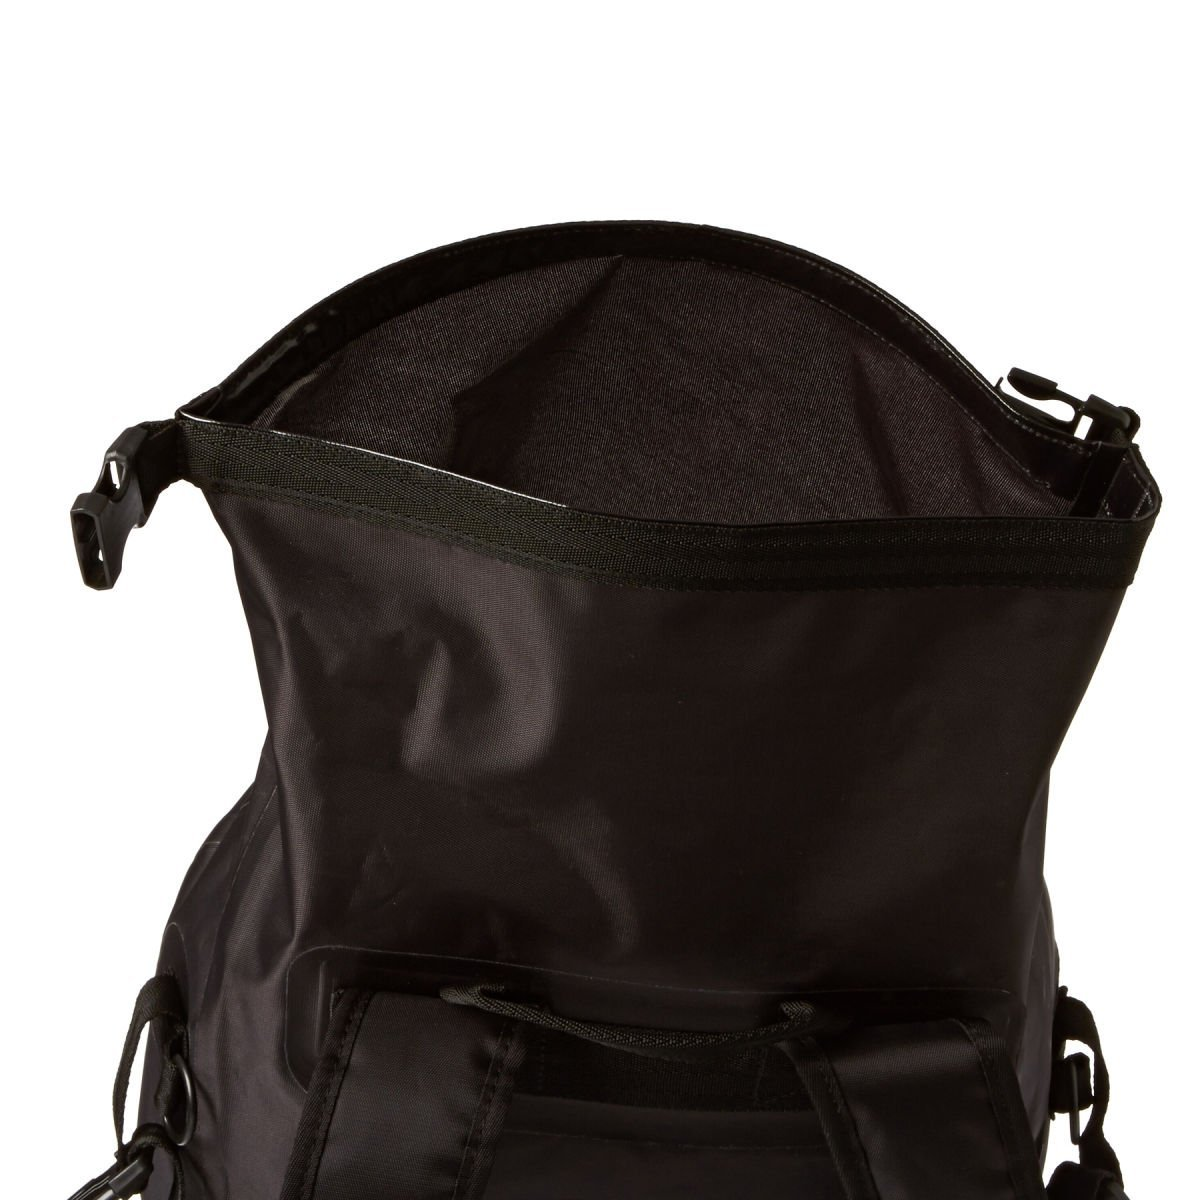 Rip Curl Welded Backpack Sac à dos, Black, 315 x 15 x 50 cm